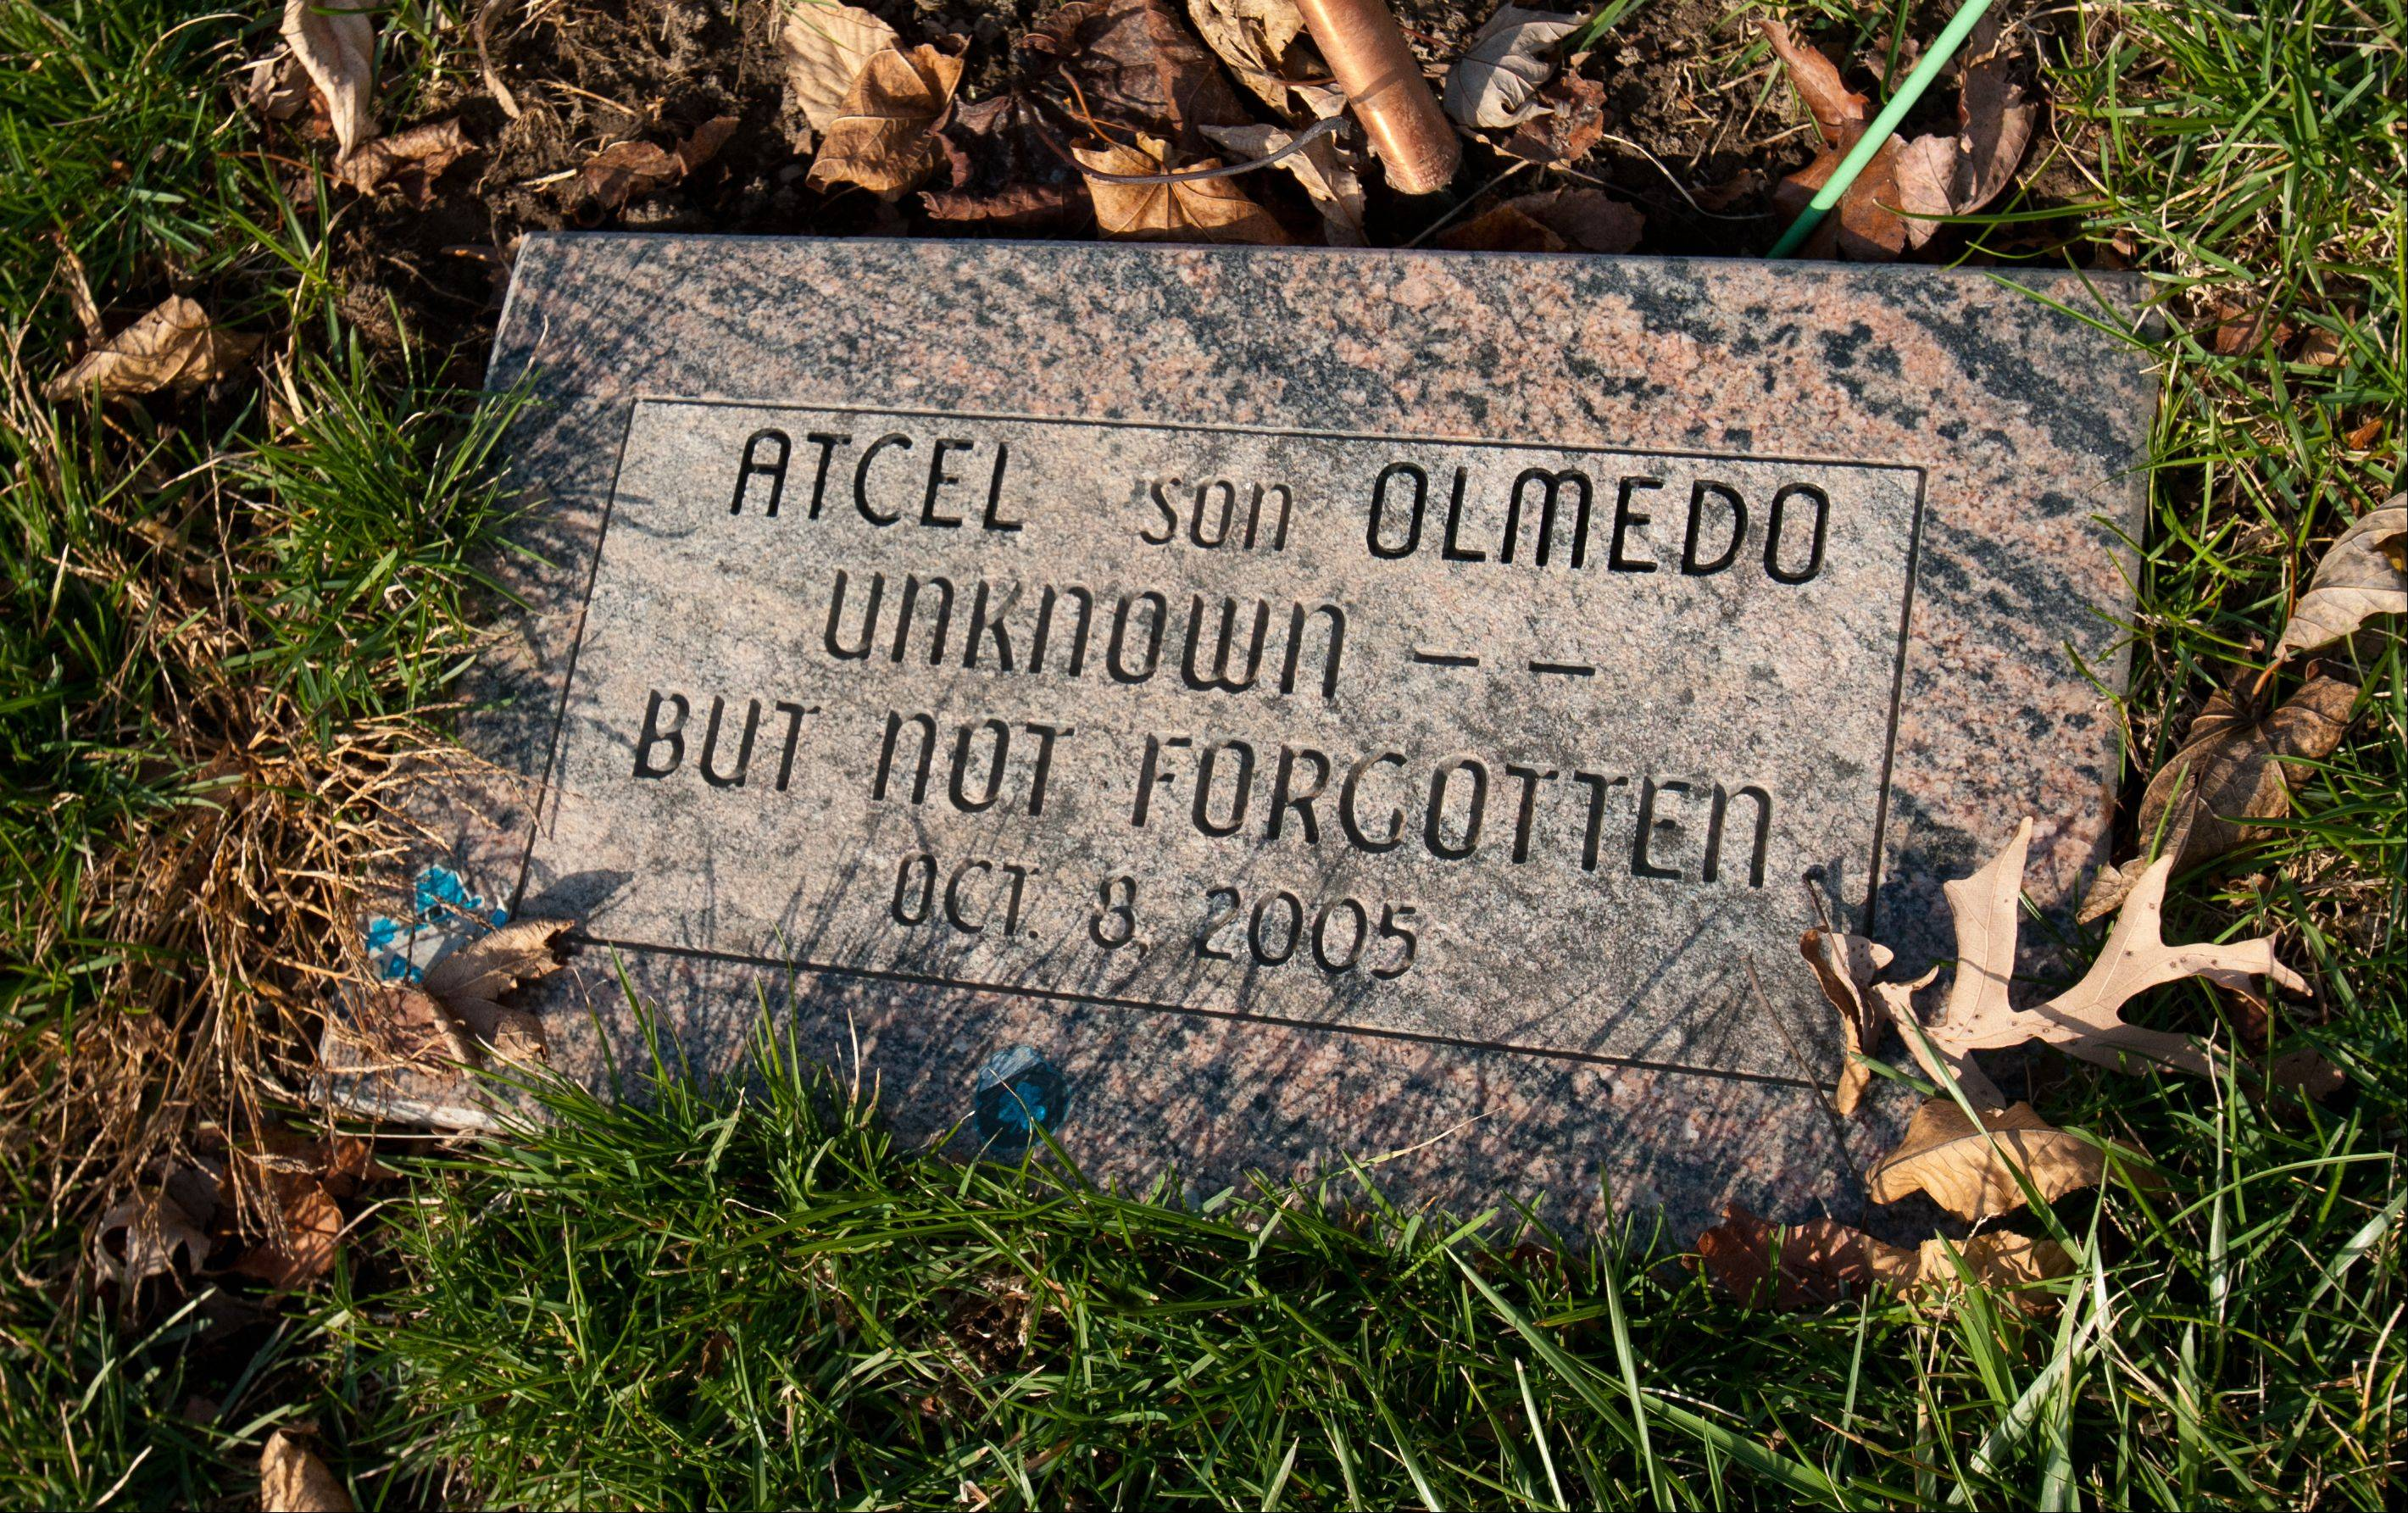 A previously nameless boy found dead seven years ago in Naperville Township has been identified as Atcel Olmedo. The boy was buried in Wheaton's Assumption Cemetery.